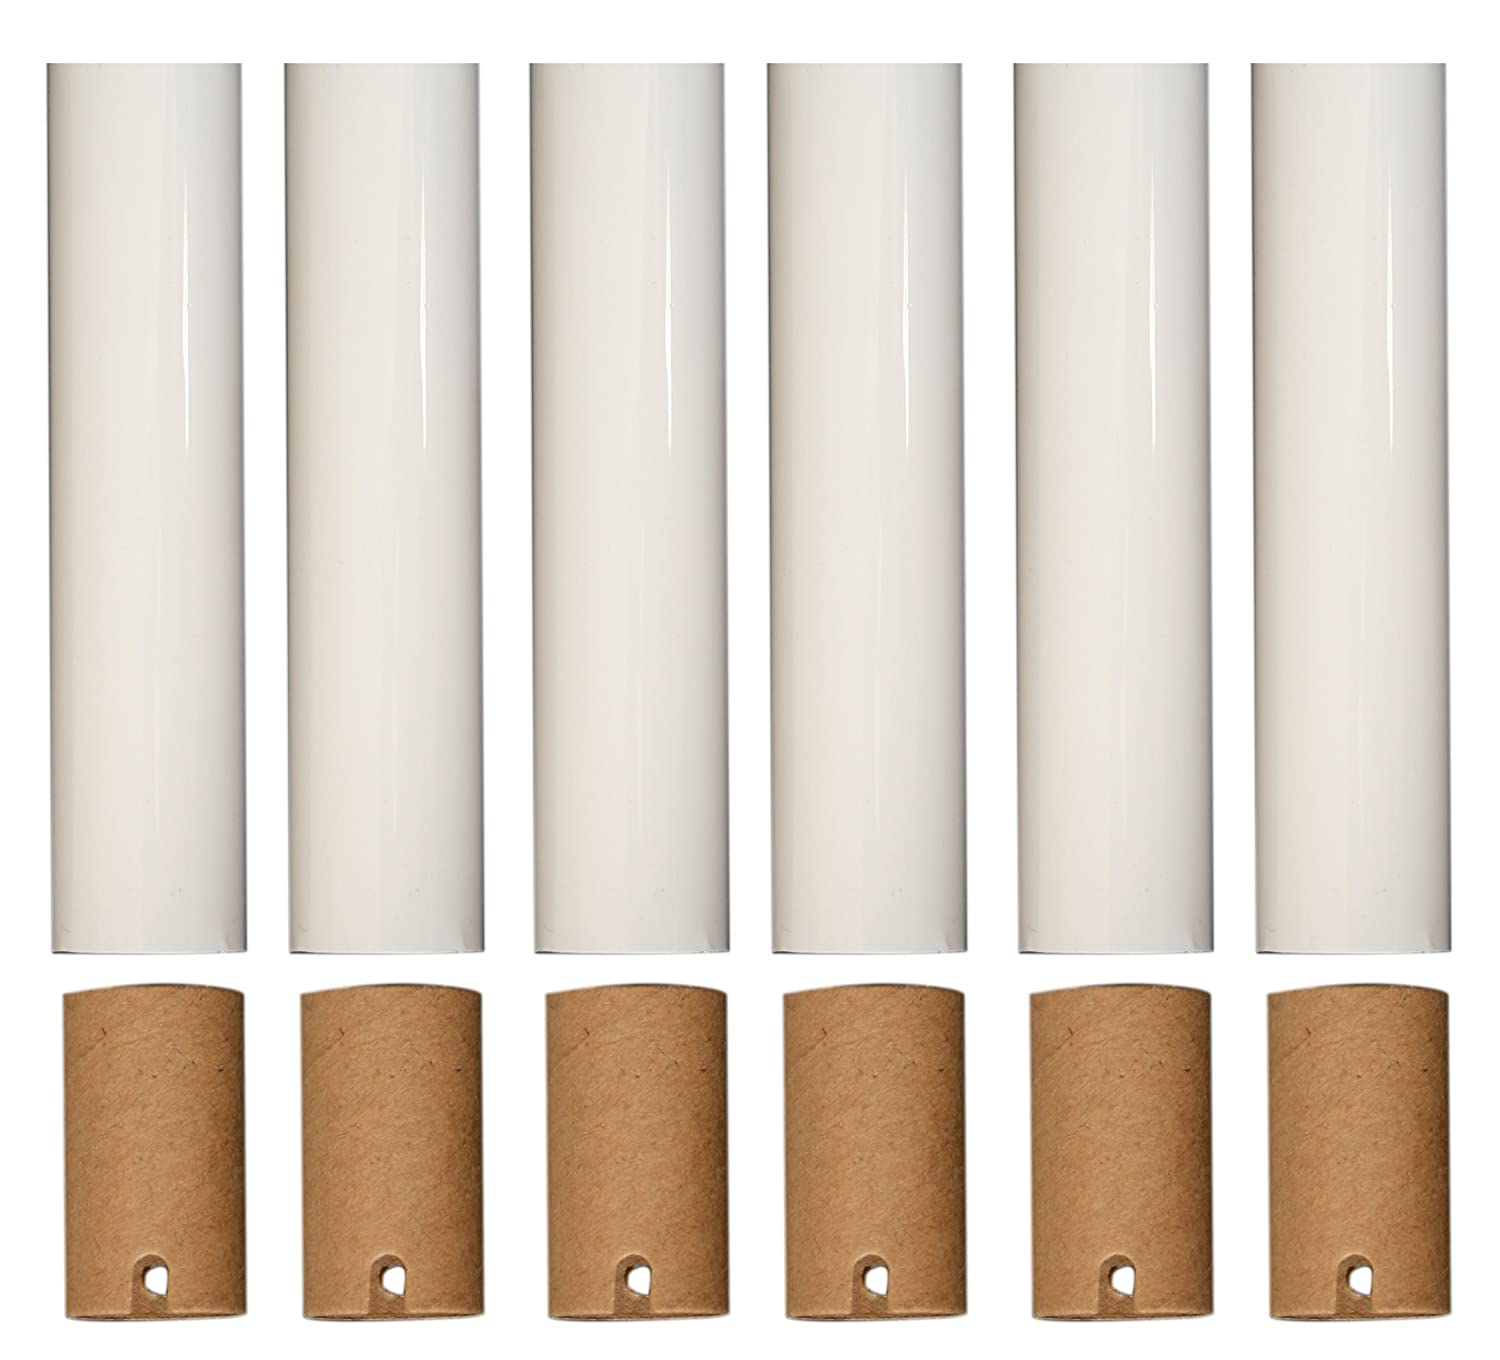 Royal Designs Chandelier Socket Covers, Paper Insulation, Cream, 4 in, Set  of 6 (SCP-5001CR-6) - - Amazon.com - Royal Designs Chandelier Socket Covers, Paper Insulation, Cream, 4